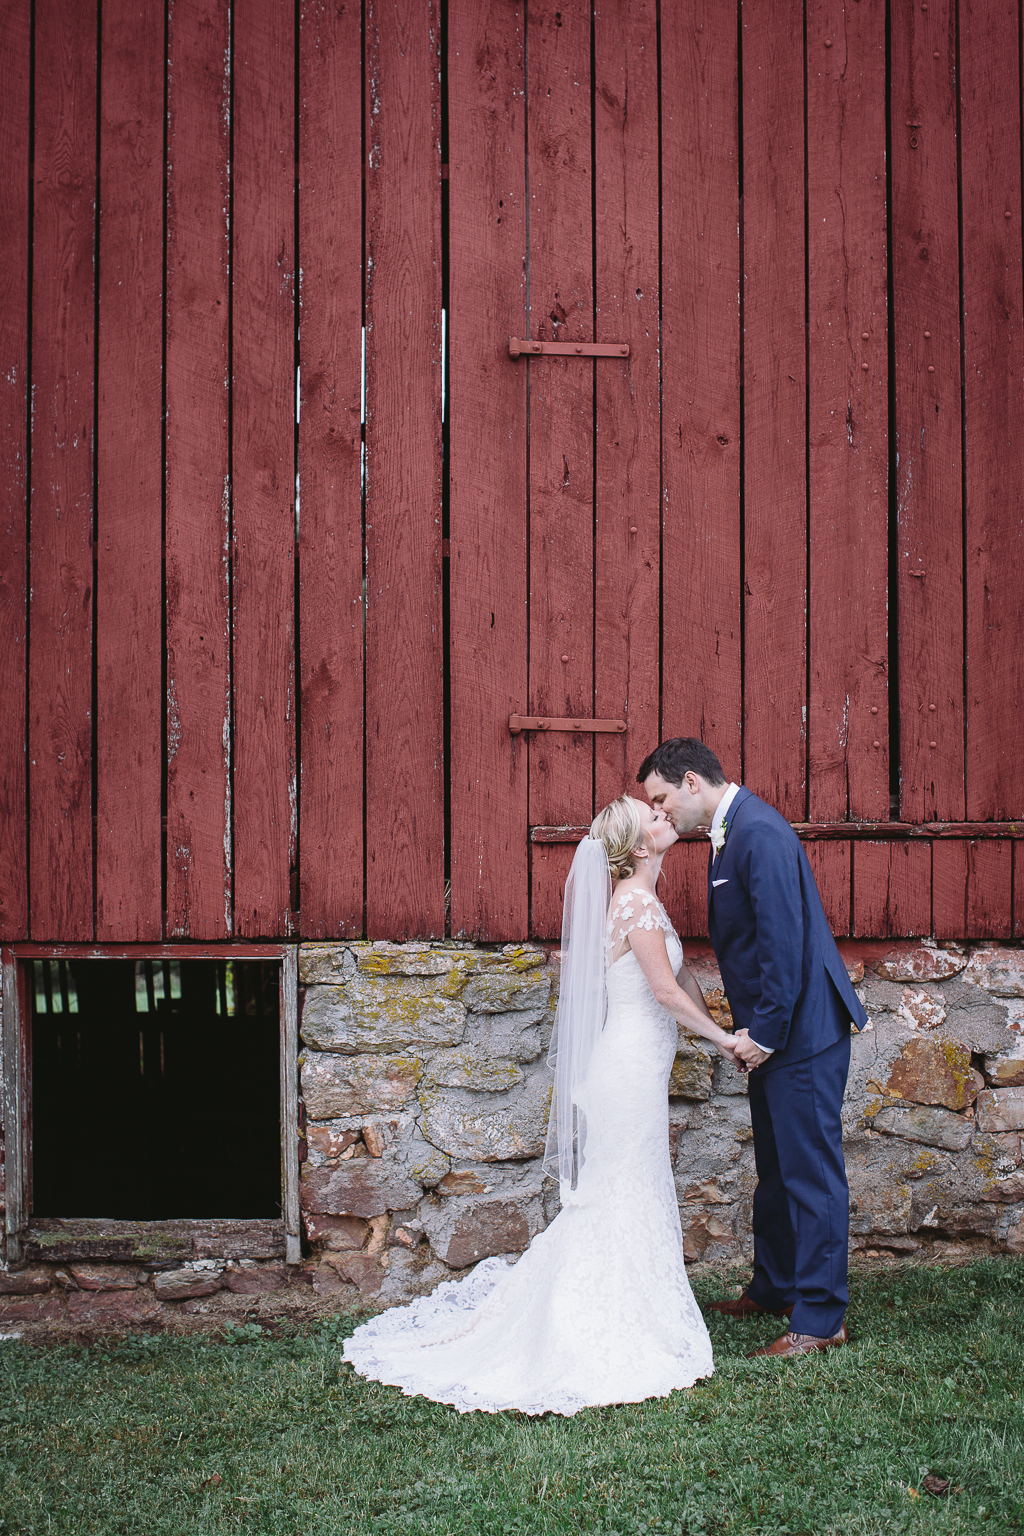 4-25-16-rustic-chic-pink-wedding-culpeper-virginia-8